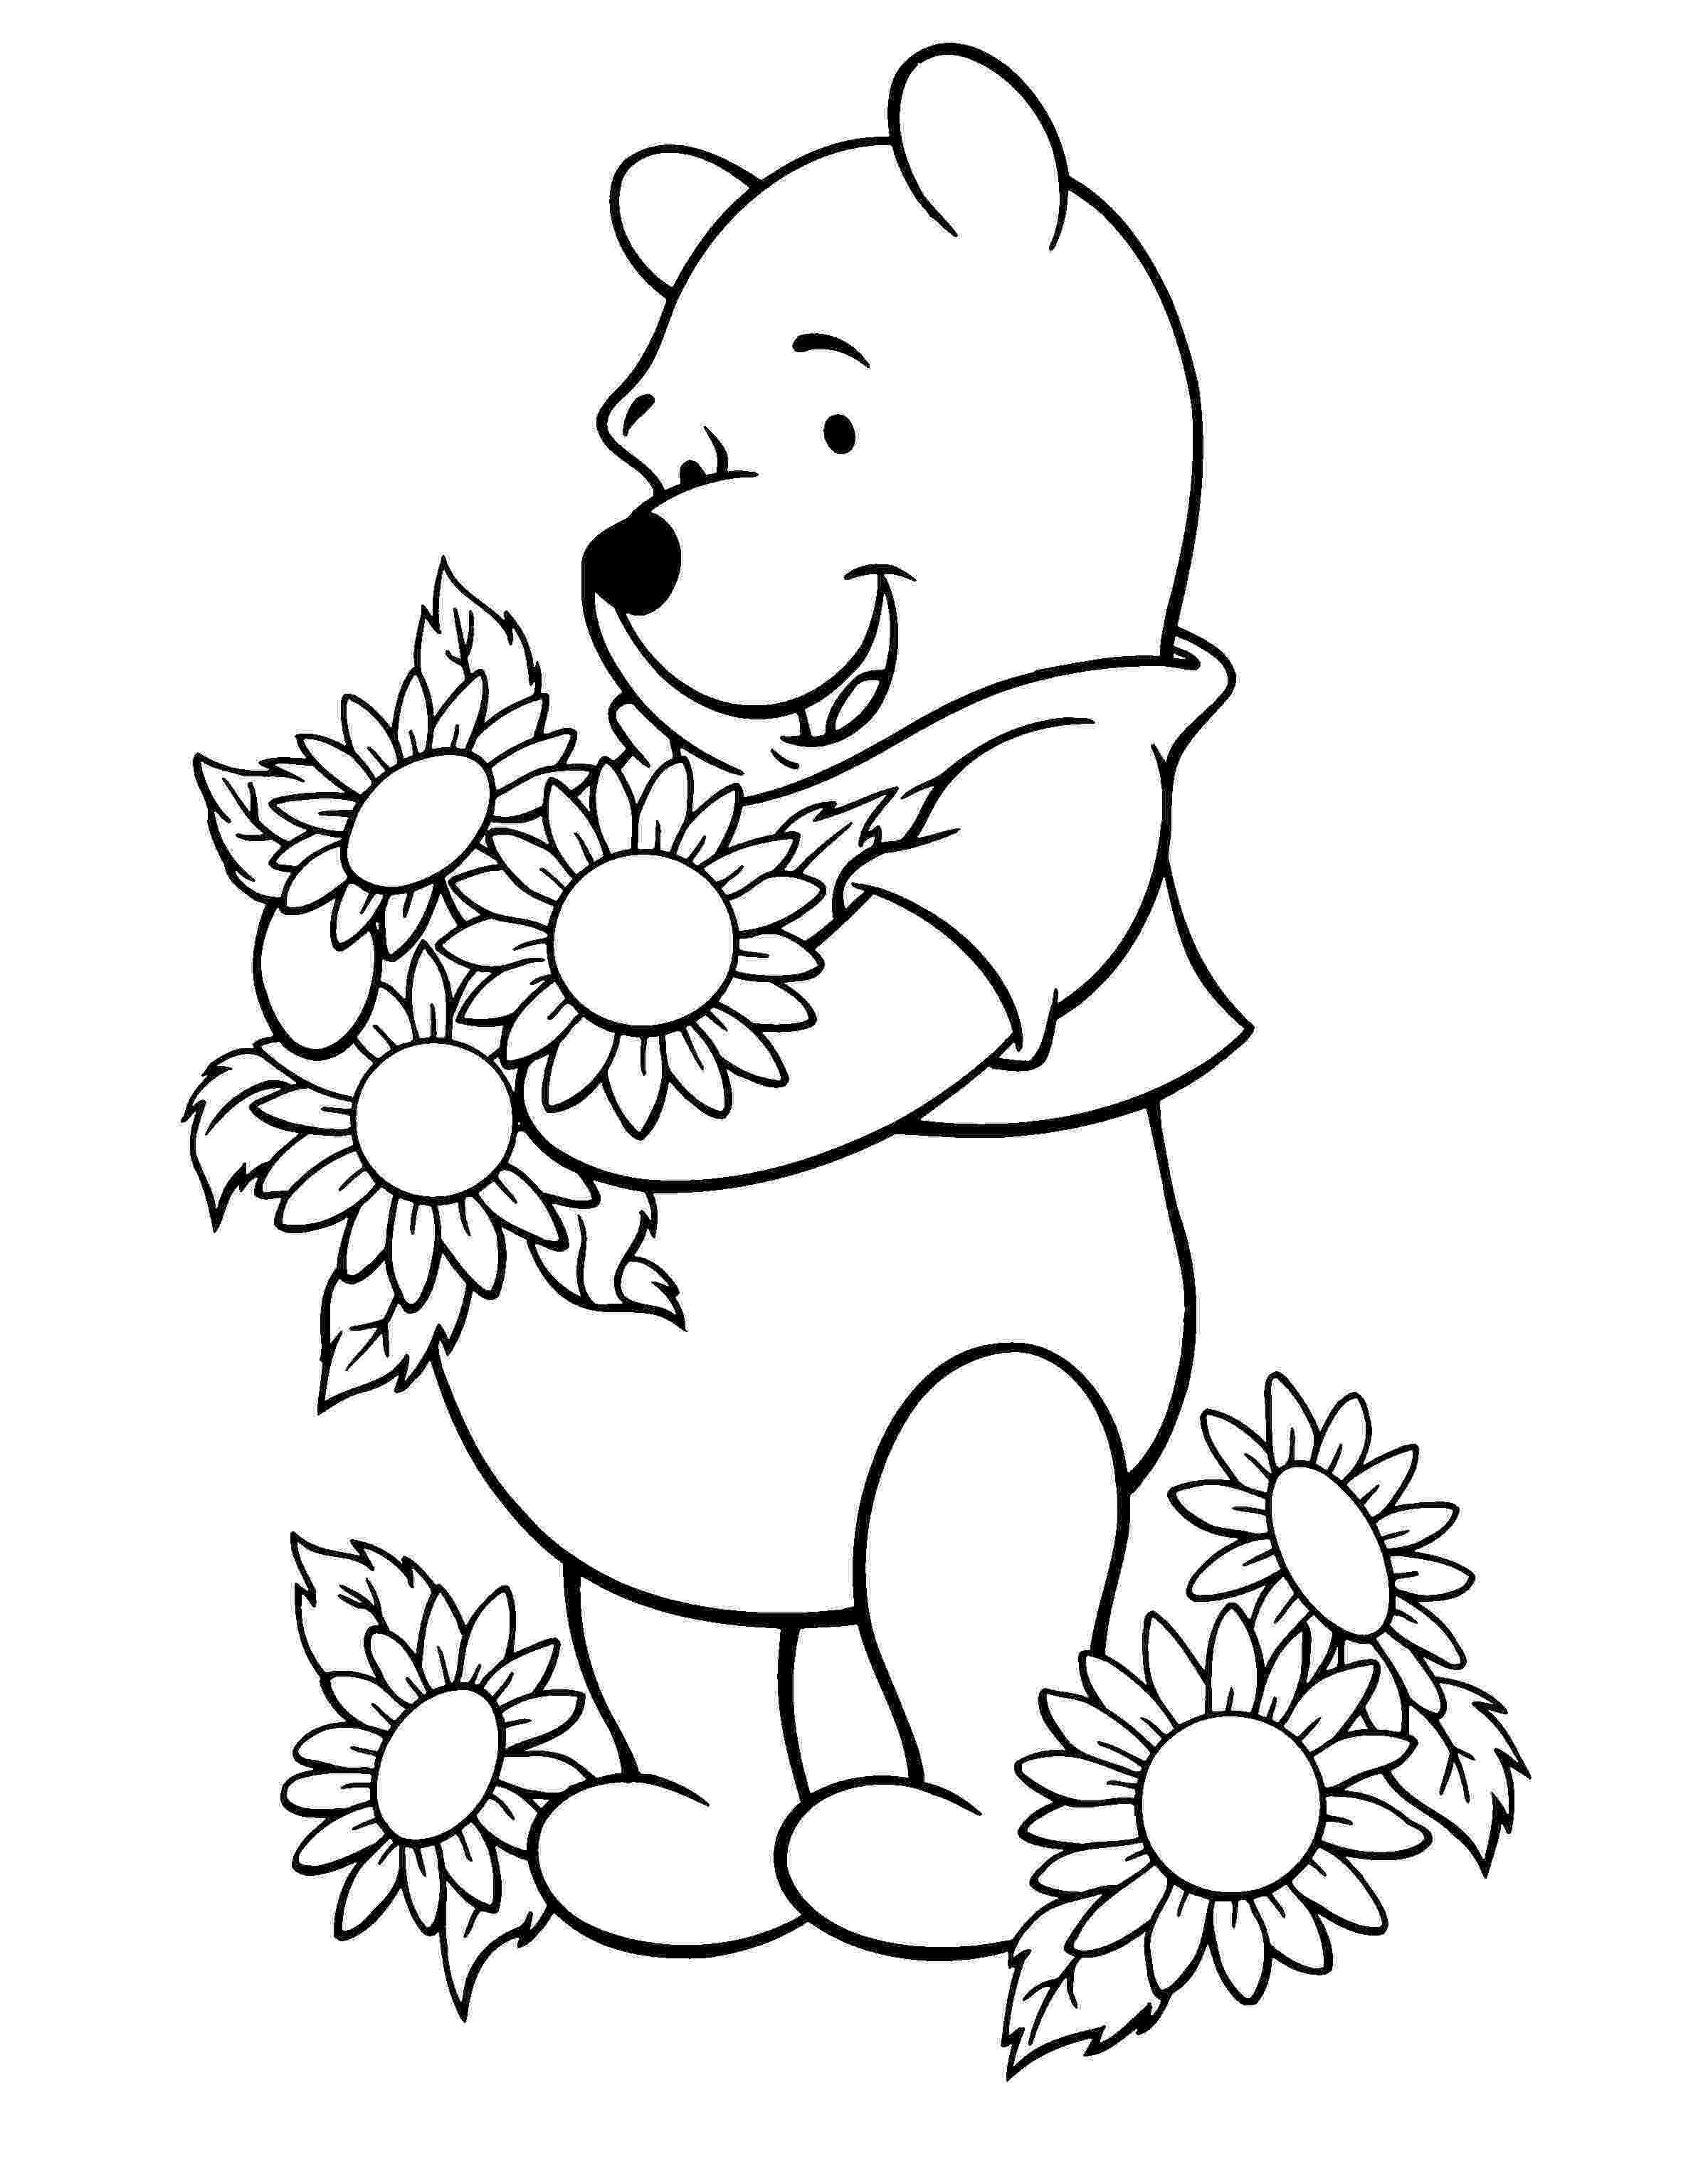 sunflower color sheet free printable sunflower coloring pages for kids color sheet sunflower